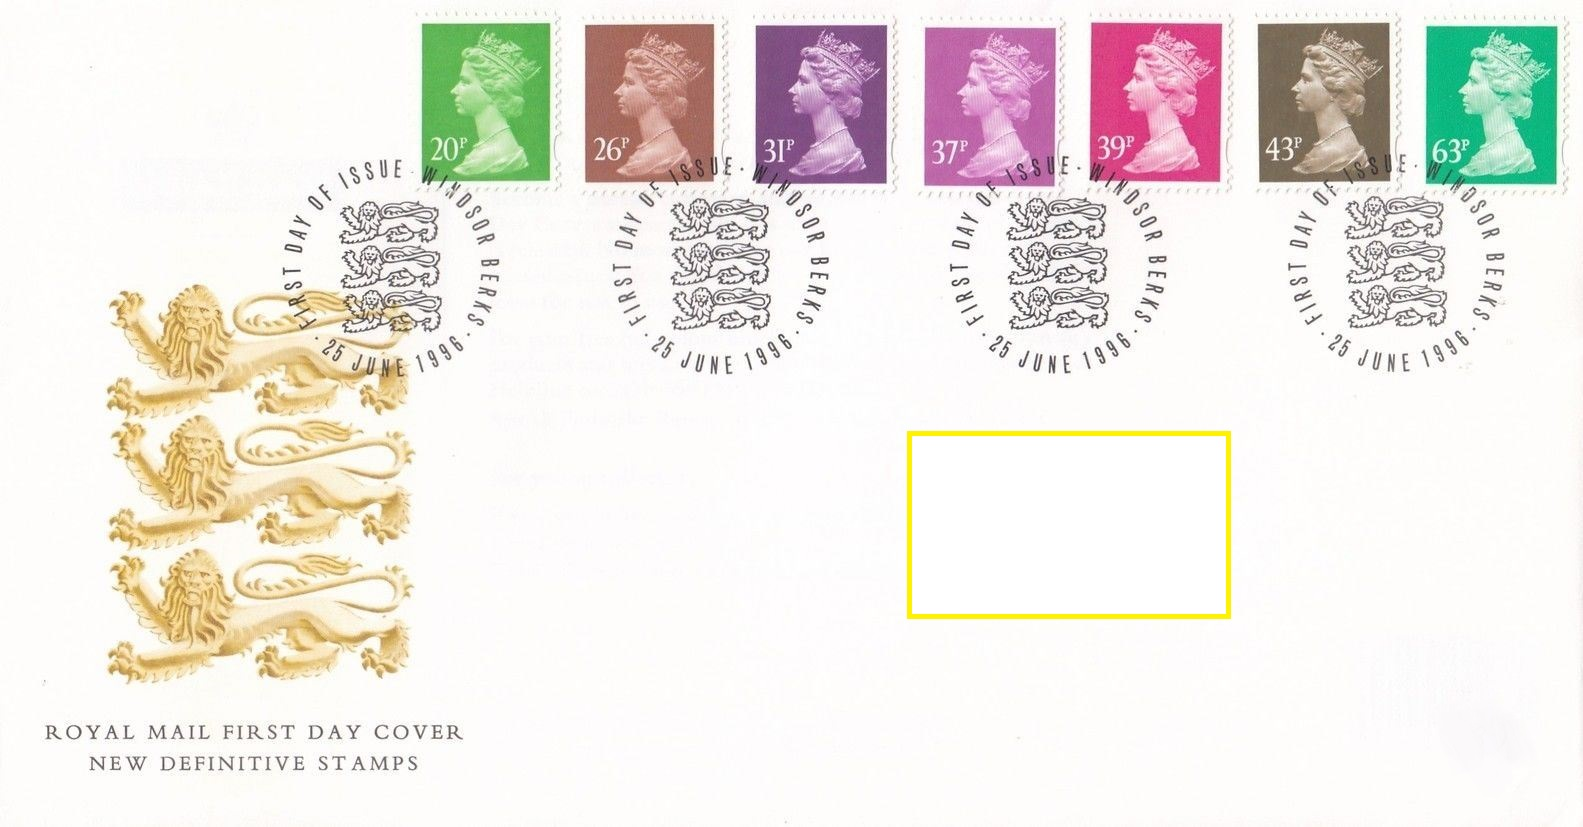 1996 GB - FDC - 7 x Changed Definitives 20p to 63p (Addressed)